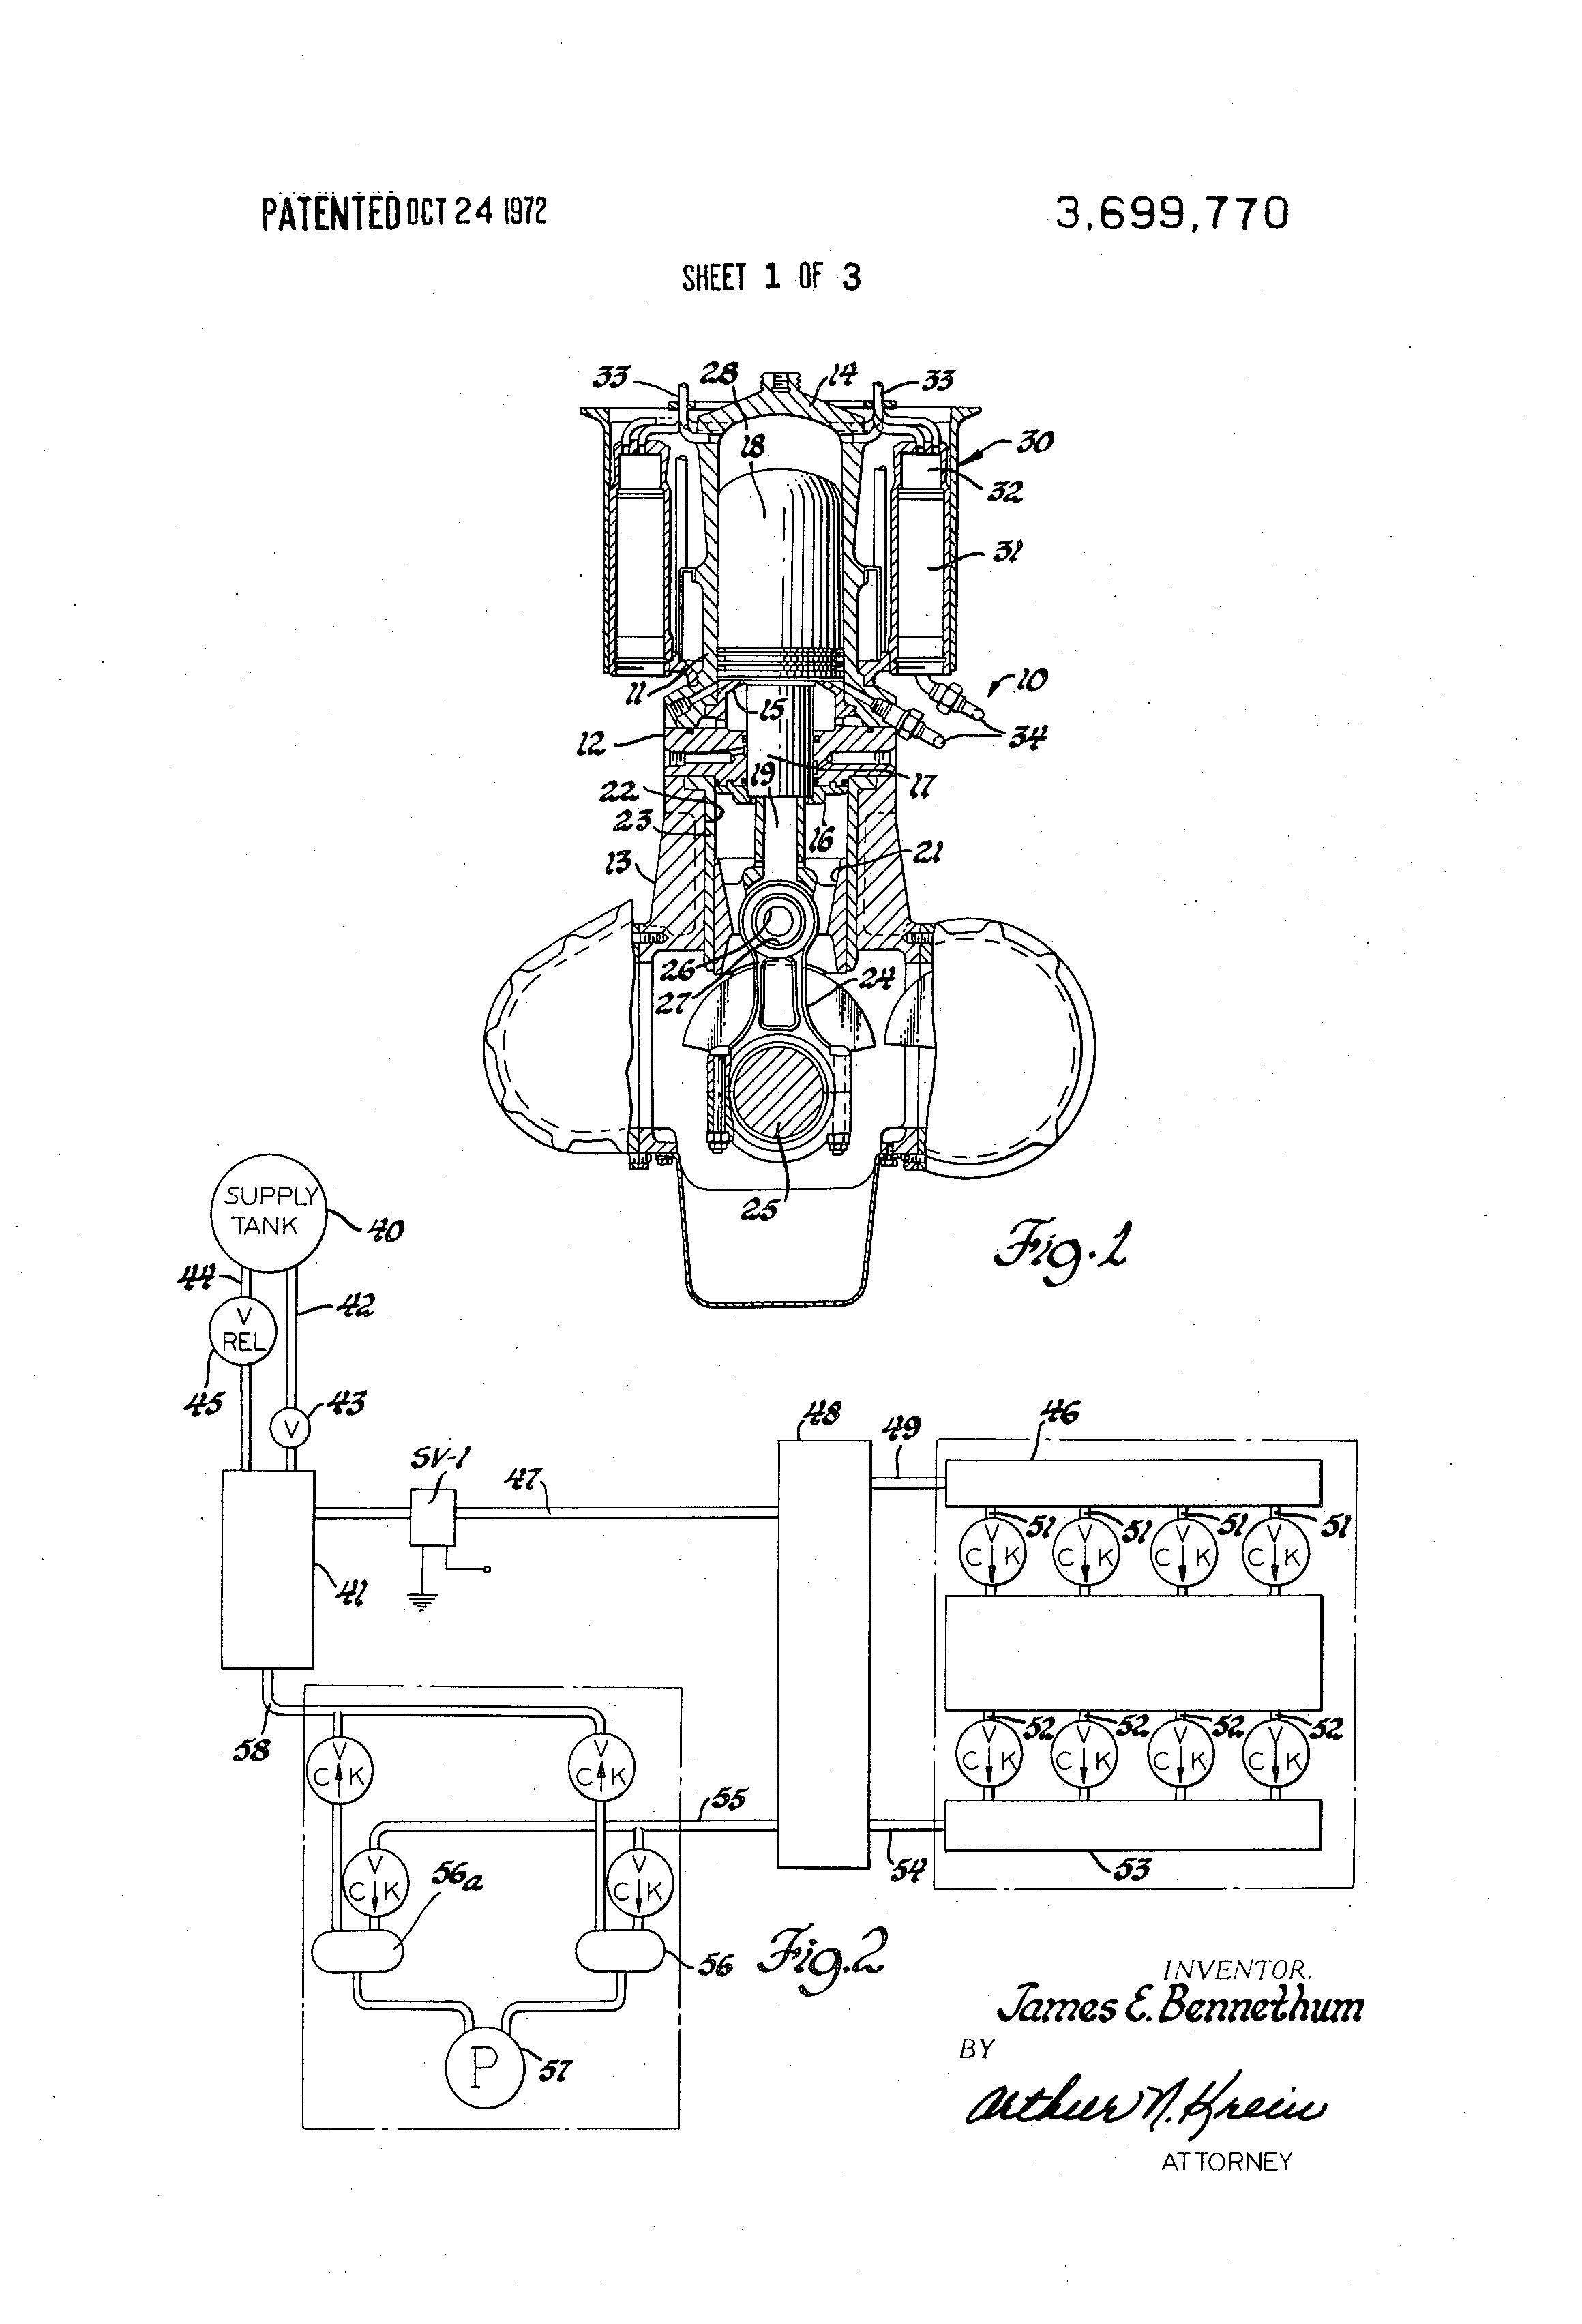 stirling engine control system us 3699770 a patent drawing patents stirling engine diagram tech pinterest [ 2320 x 3408 Pixel ]